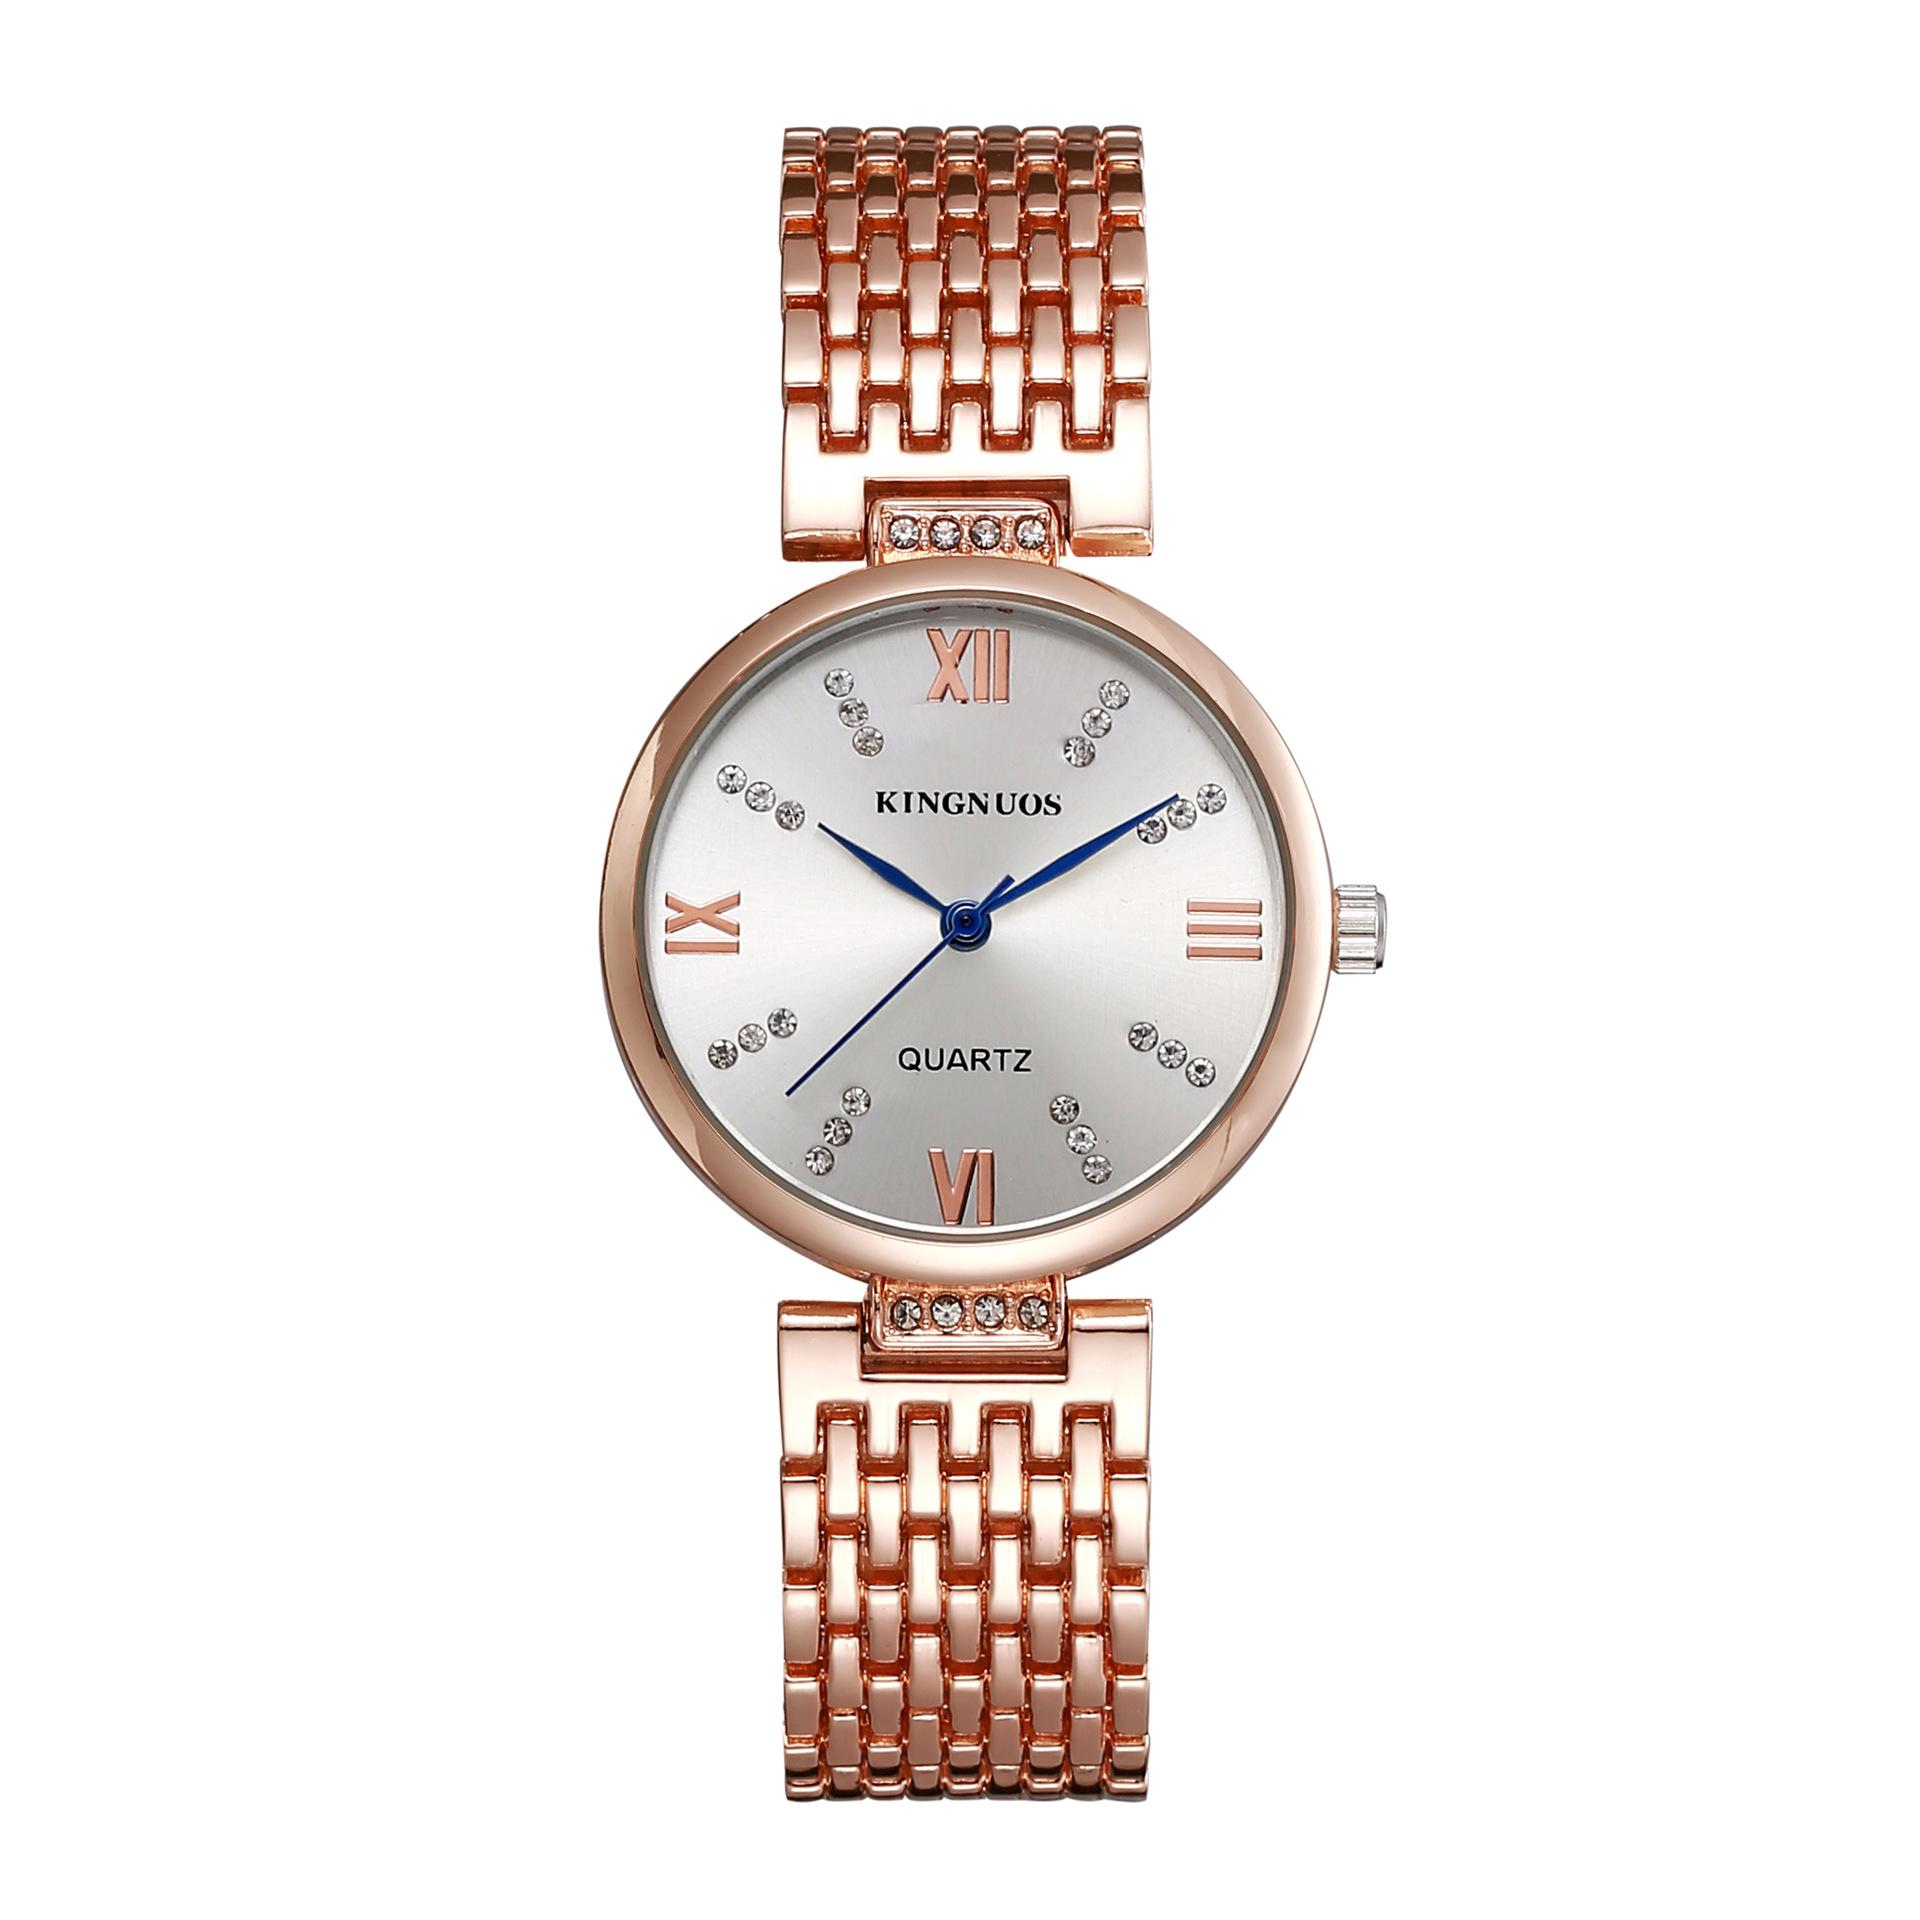 Shipping special offer high-end fashion ladies diamond watches solid stainless steel watch waterproof watch table student Mens Watch